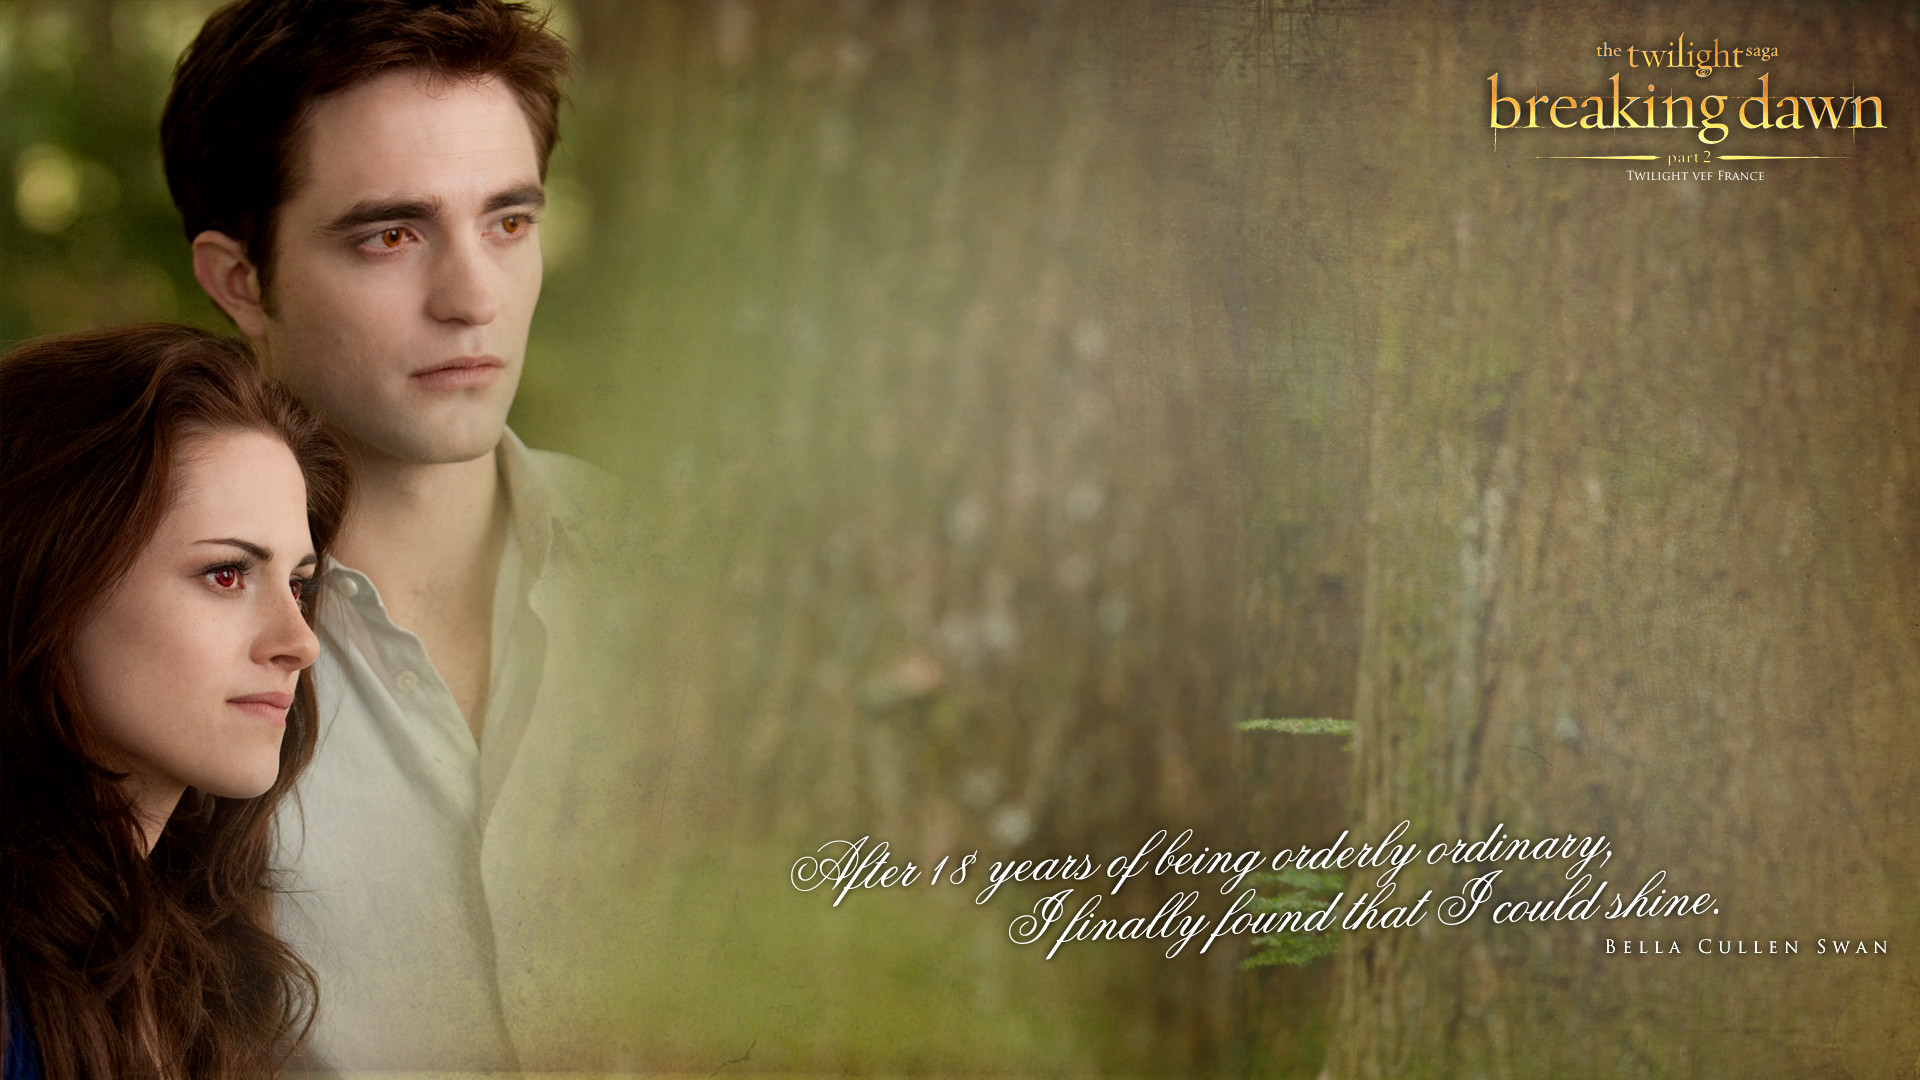 breaking dawn View the twilight saga: breaking dawn - part 2 (2012) photos, movie images, film stills and cast and crew photos on fandango.